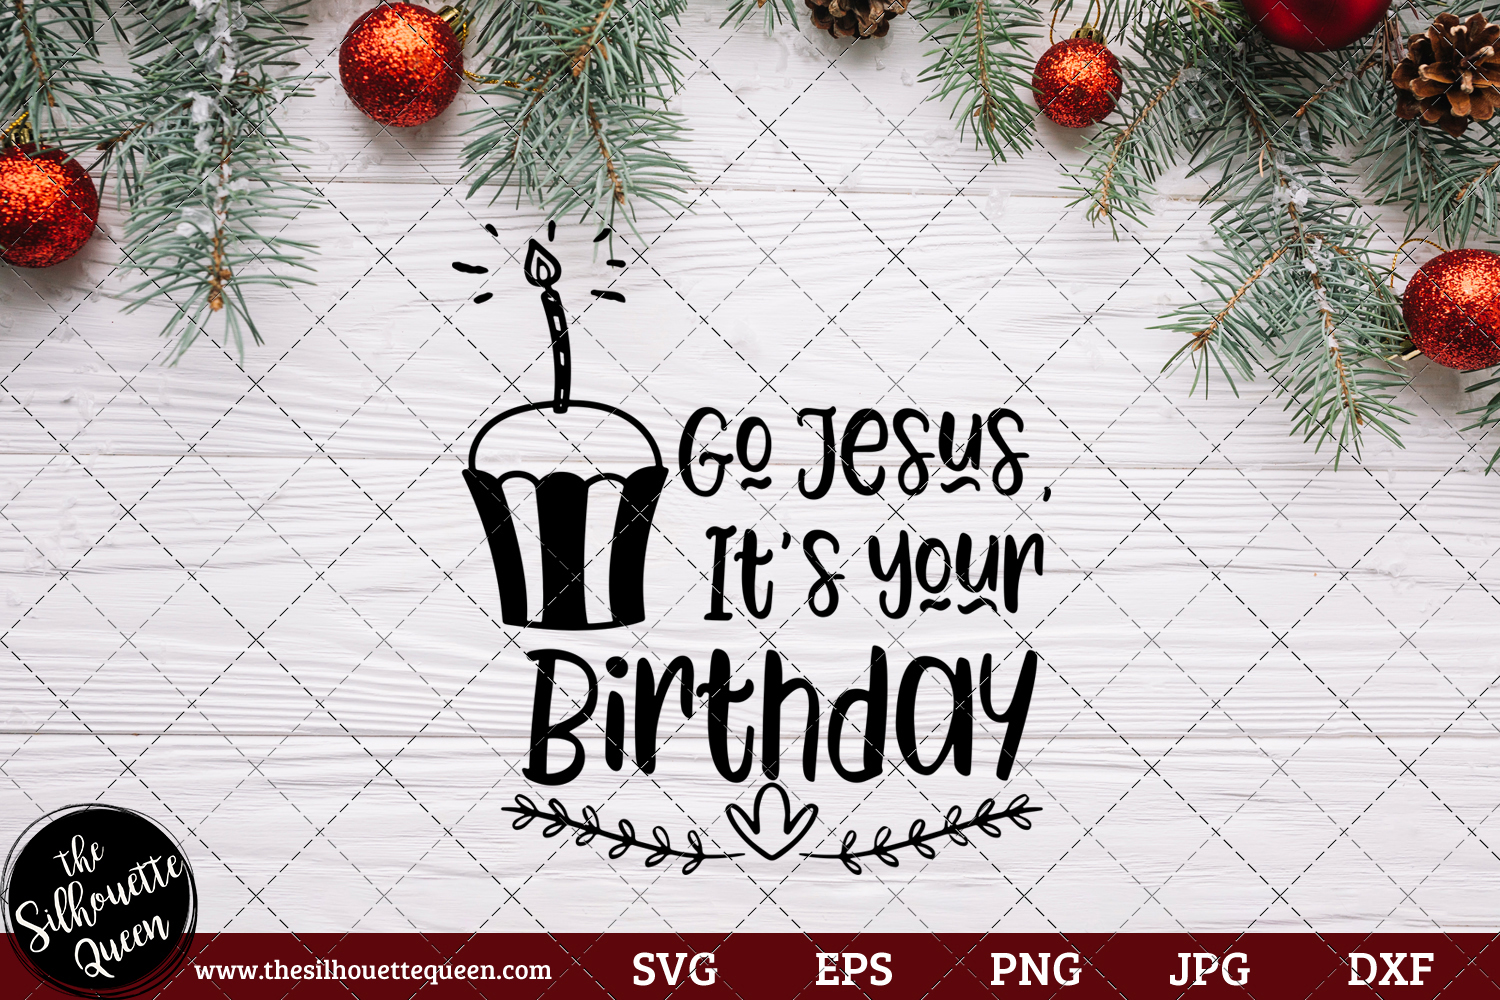 Download Free Go Jesus It S Your Birthday Saying Graphic By for Cricut Explore, Silhouette and other cutting machines.